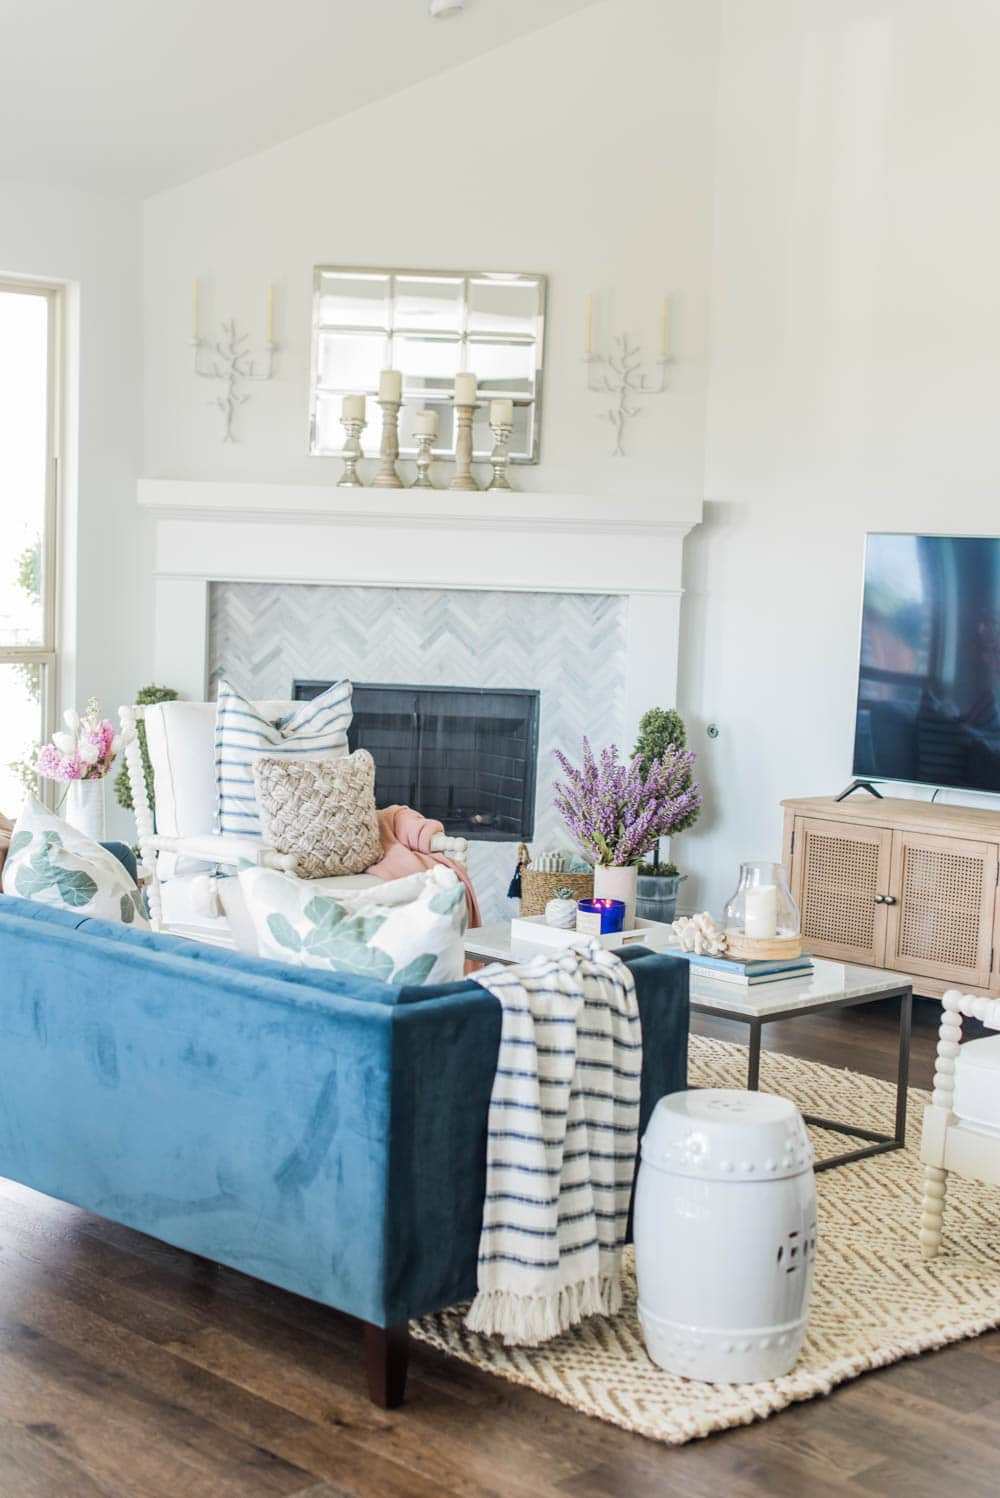 Gorgeous summer living room home decor ideas to bring some summer color into your home! #ABlissfulNest #summertrends #homedecor #livingroom #home #forthehome #tour #shop #coastal #interiordesign #decor #summer #summerhomedecor #summerdecor #livingroom #livingroomdecor